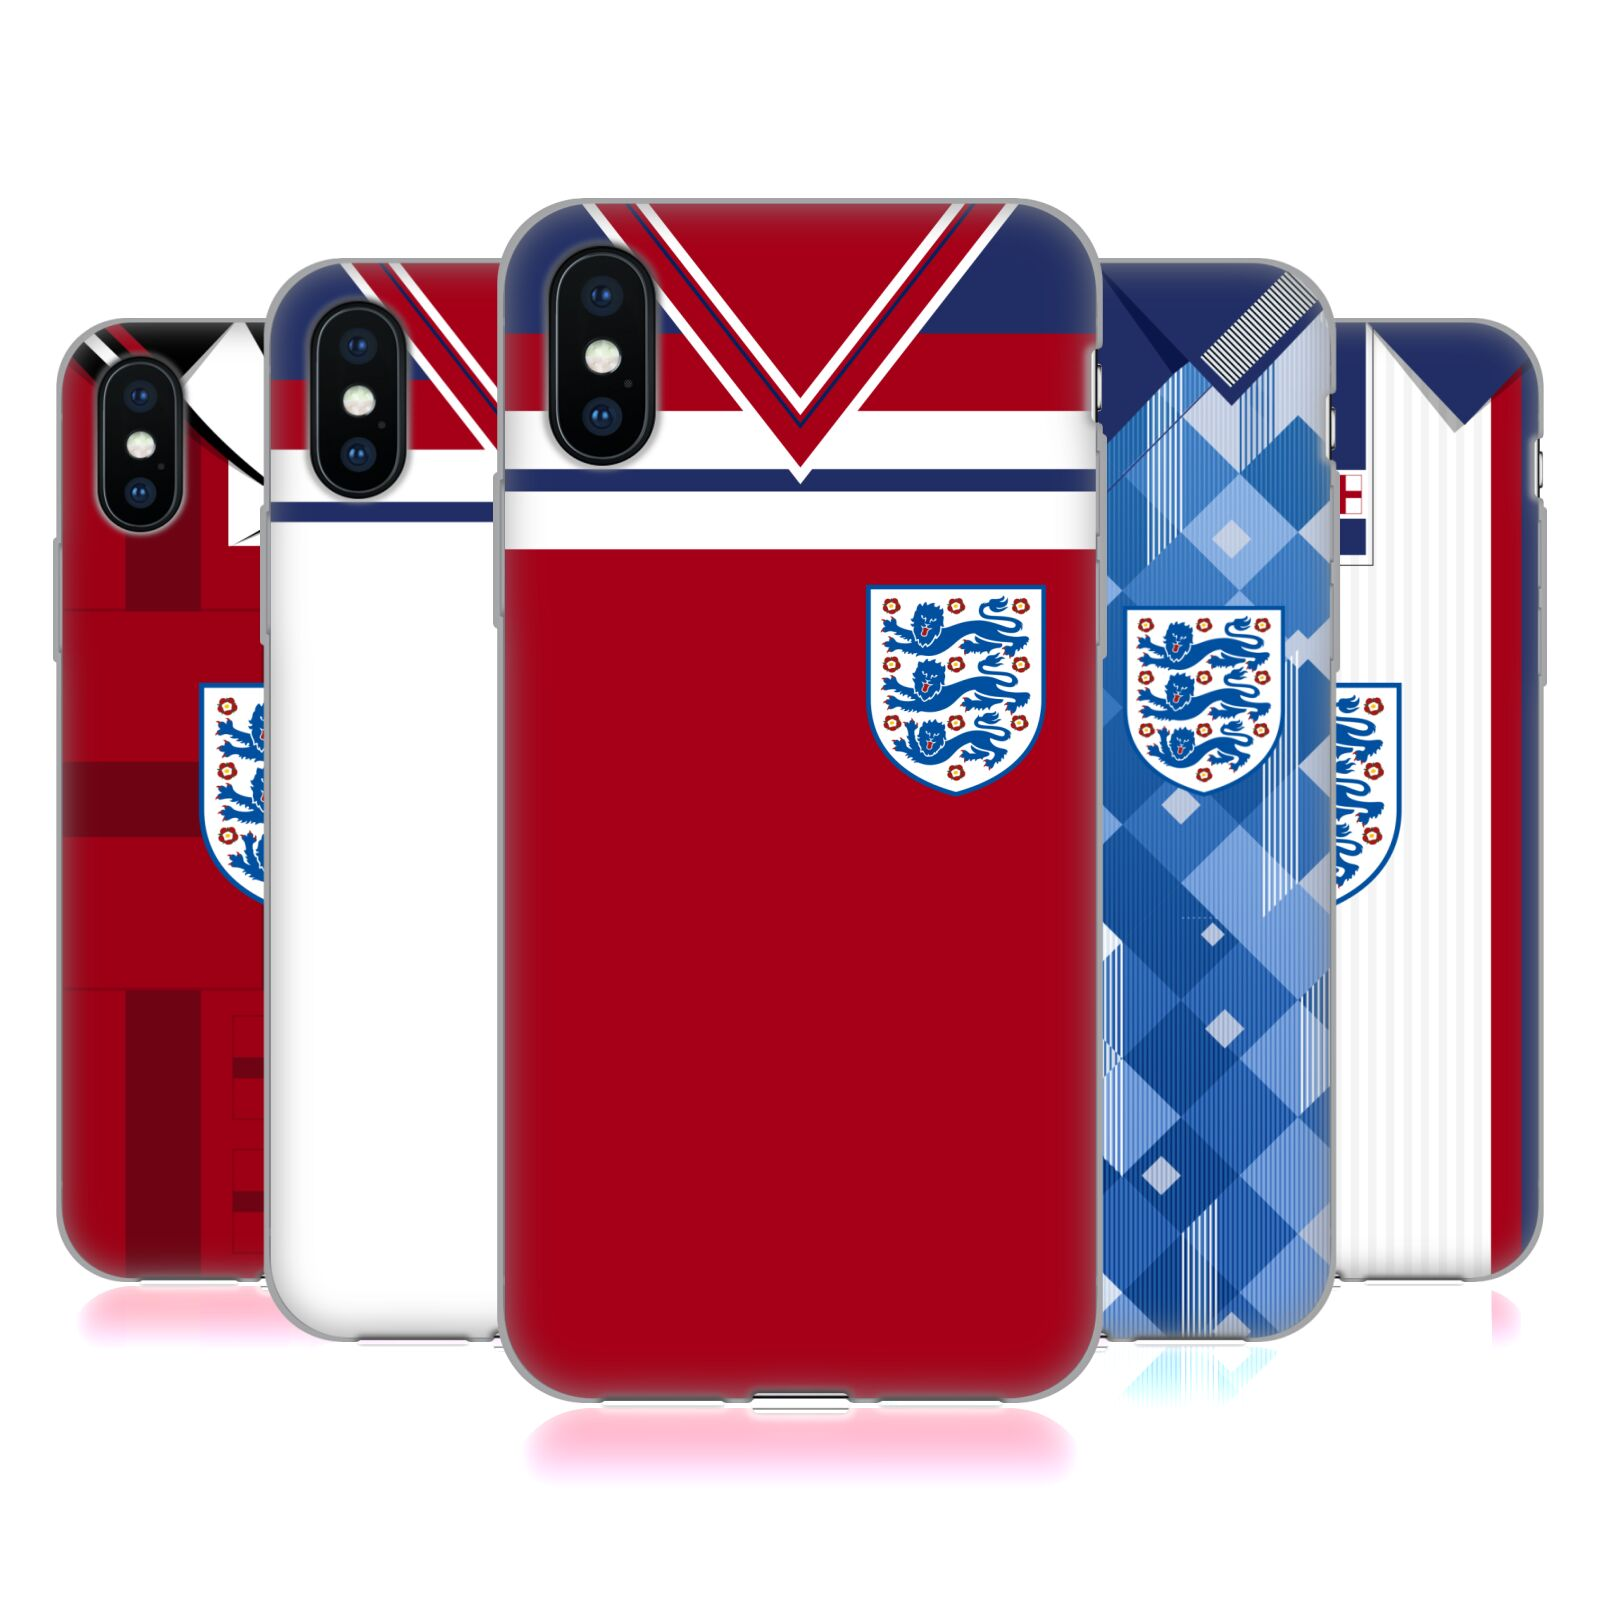 England National Football Team <!--translate-lineup-->2018 Retro Crest<!--translate-lineup-->